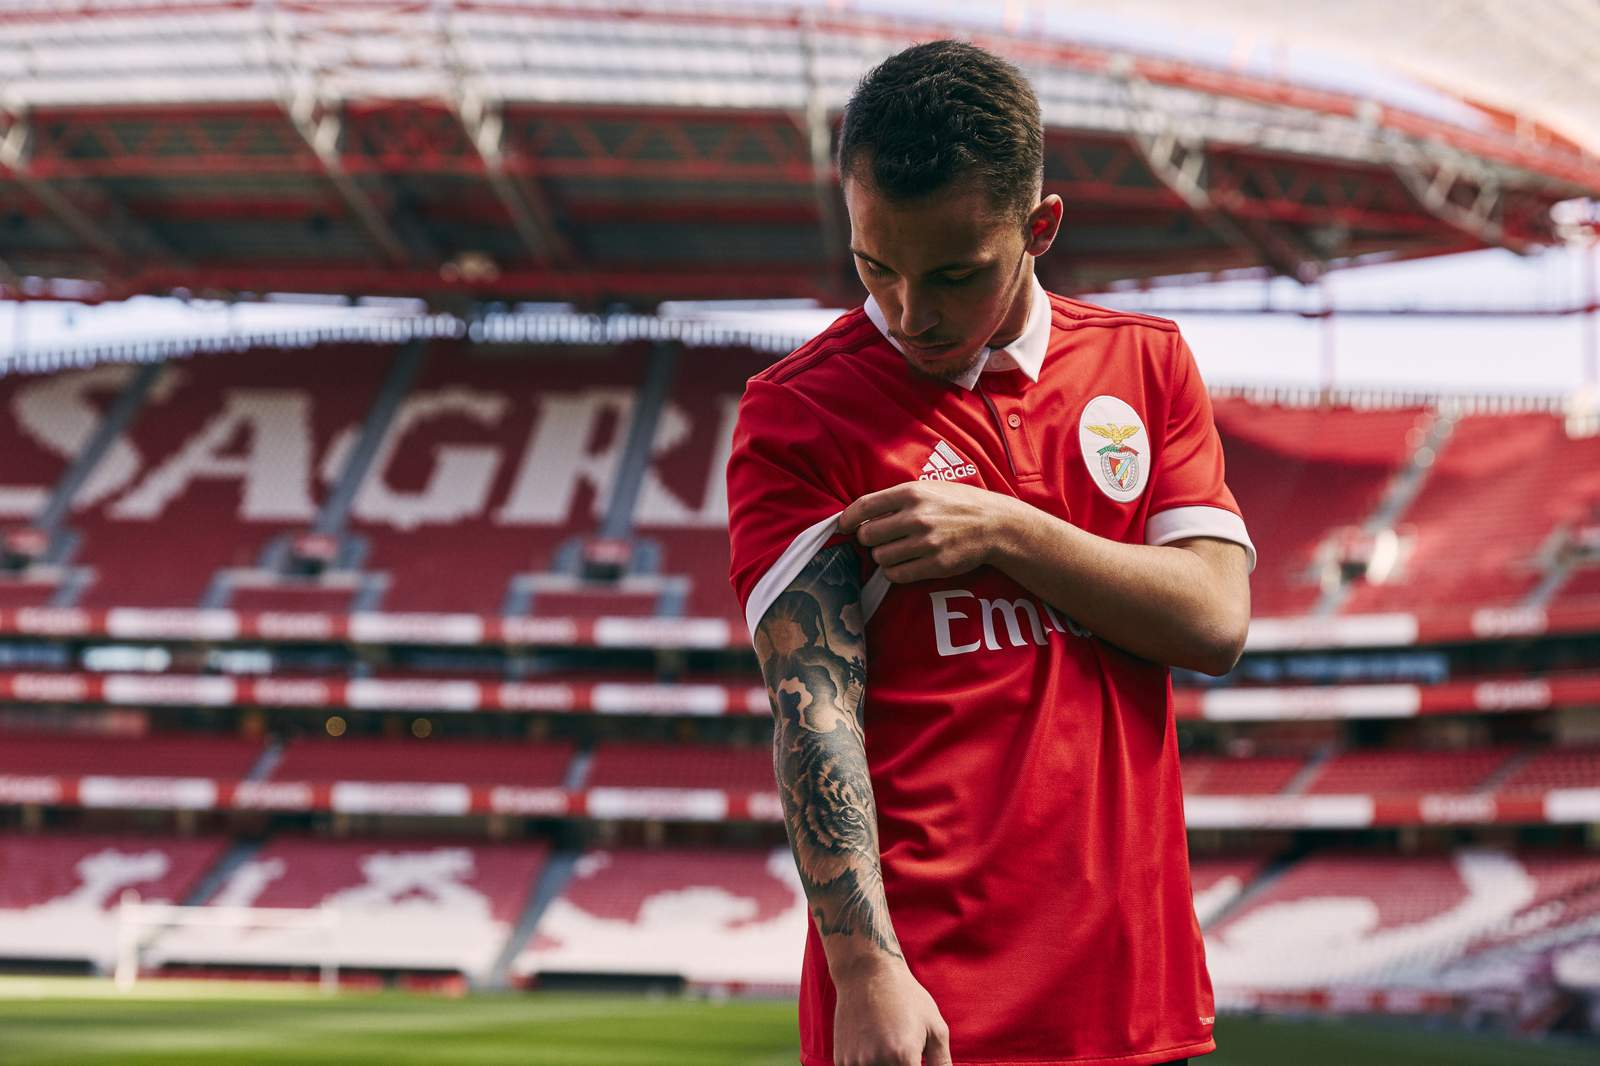 Benfica 17 18 Home Kit Revealed Footy Headlines